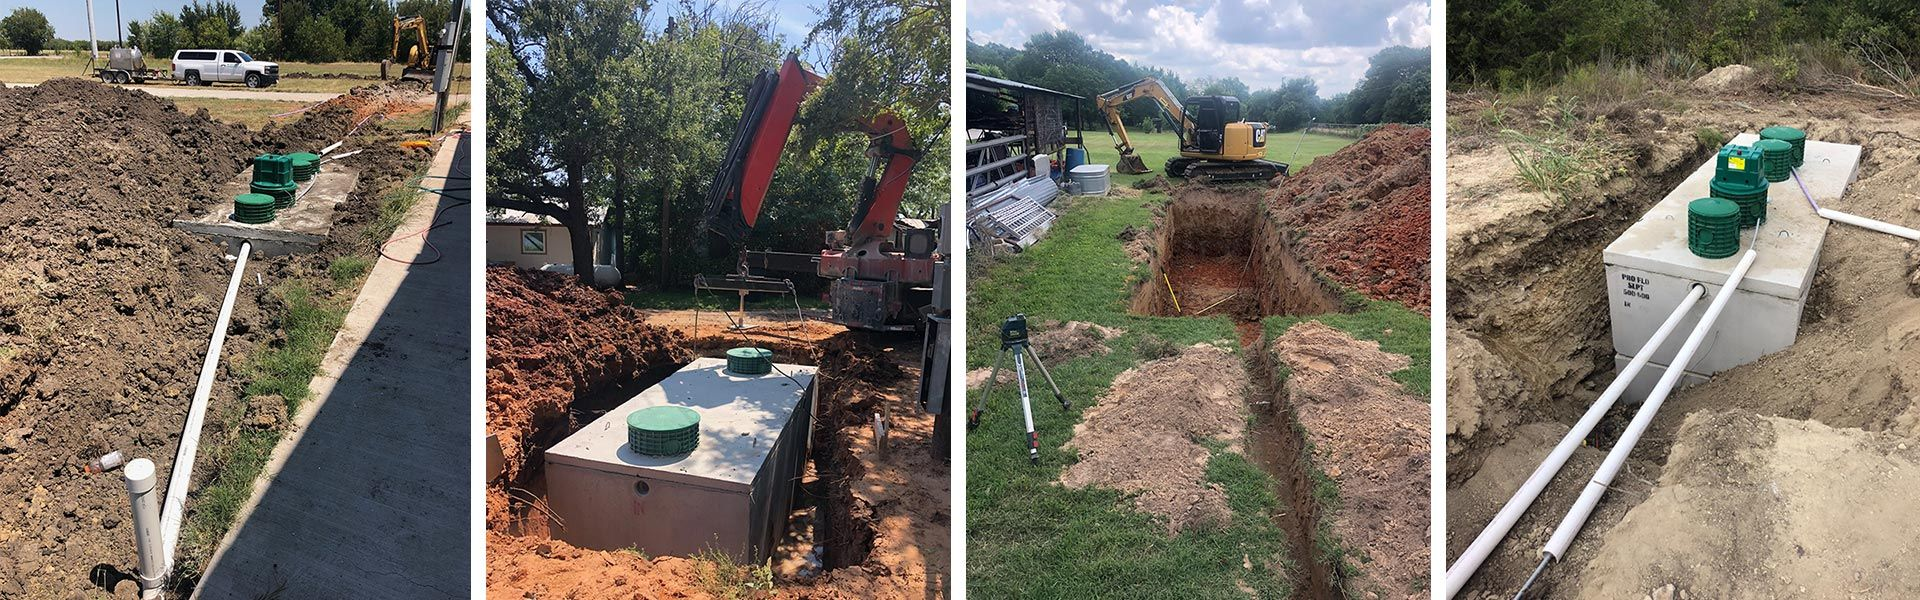 Septic System Installation by MSTS Services